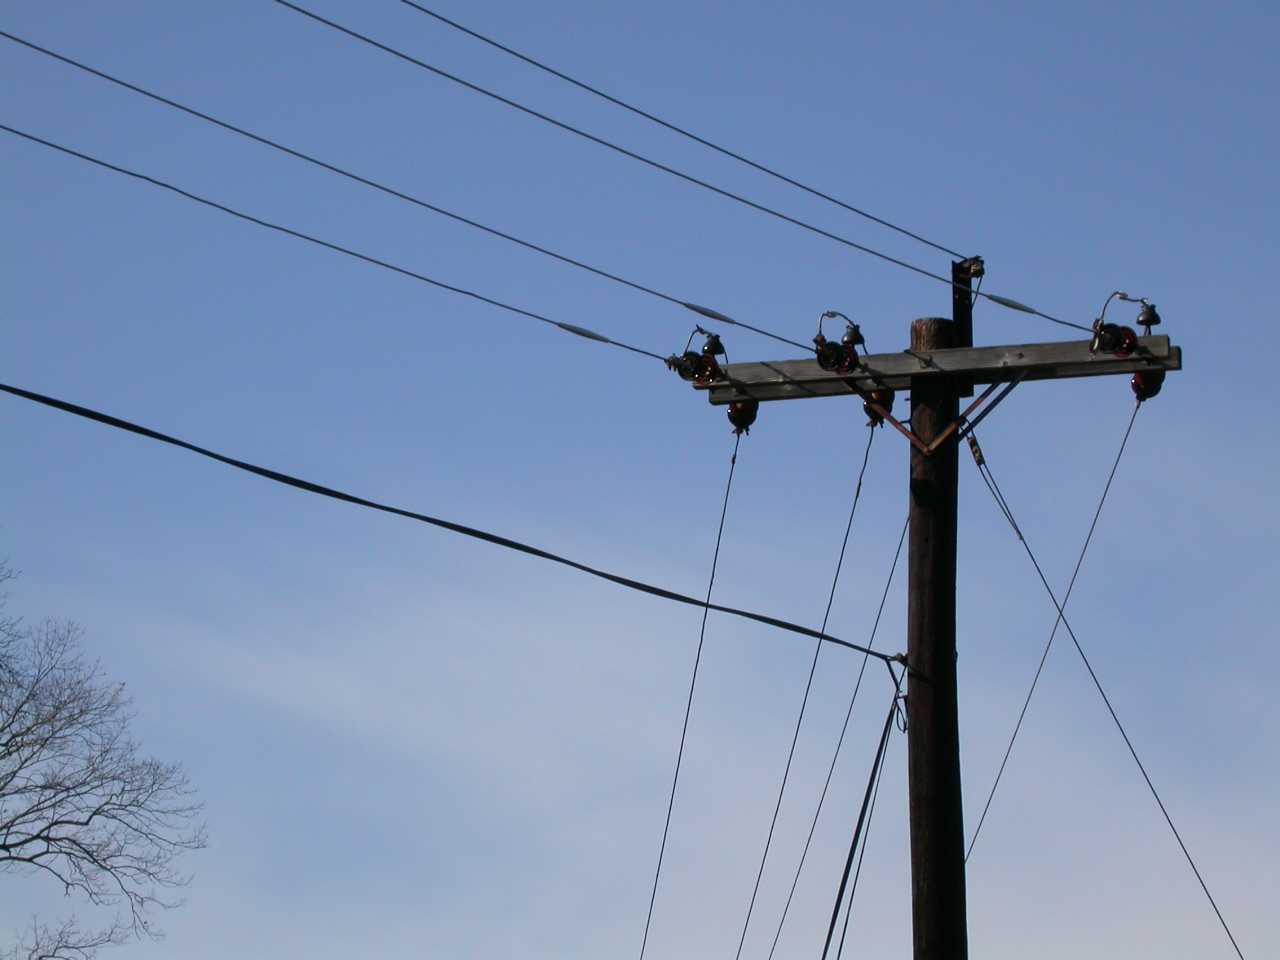 Free photo: High voltage power lines - voltage, wires, powerlines ...